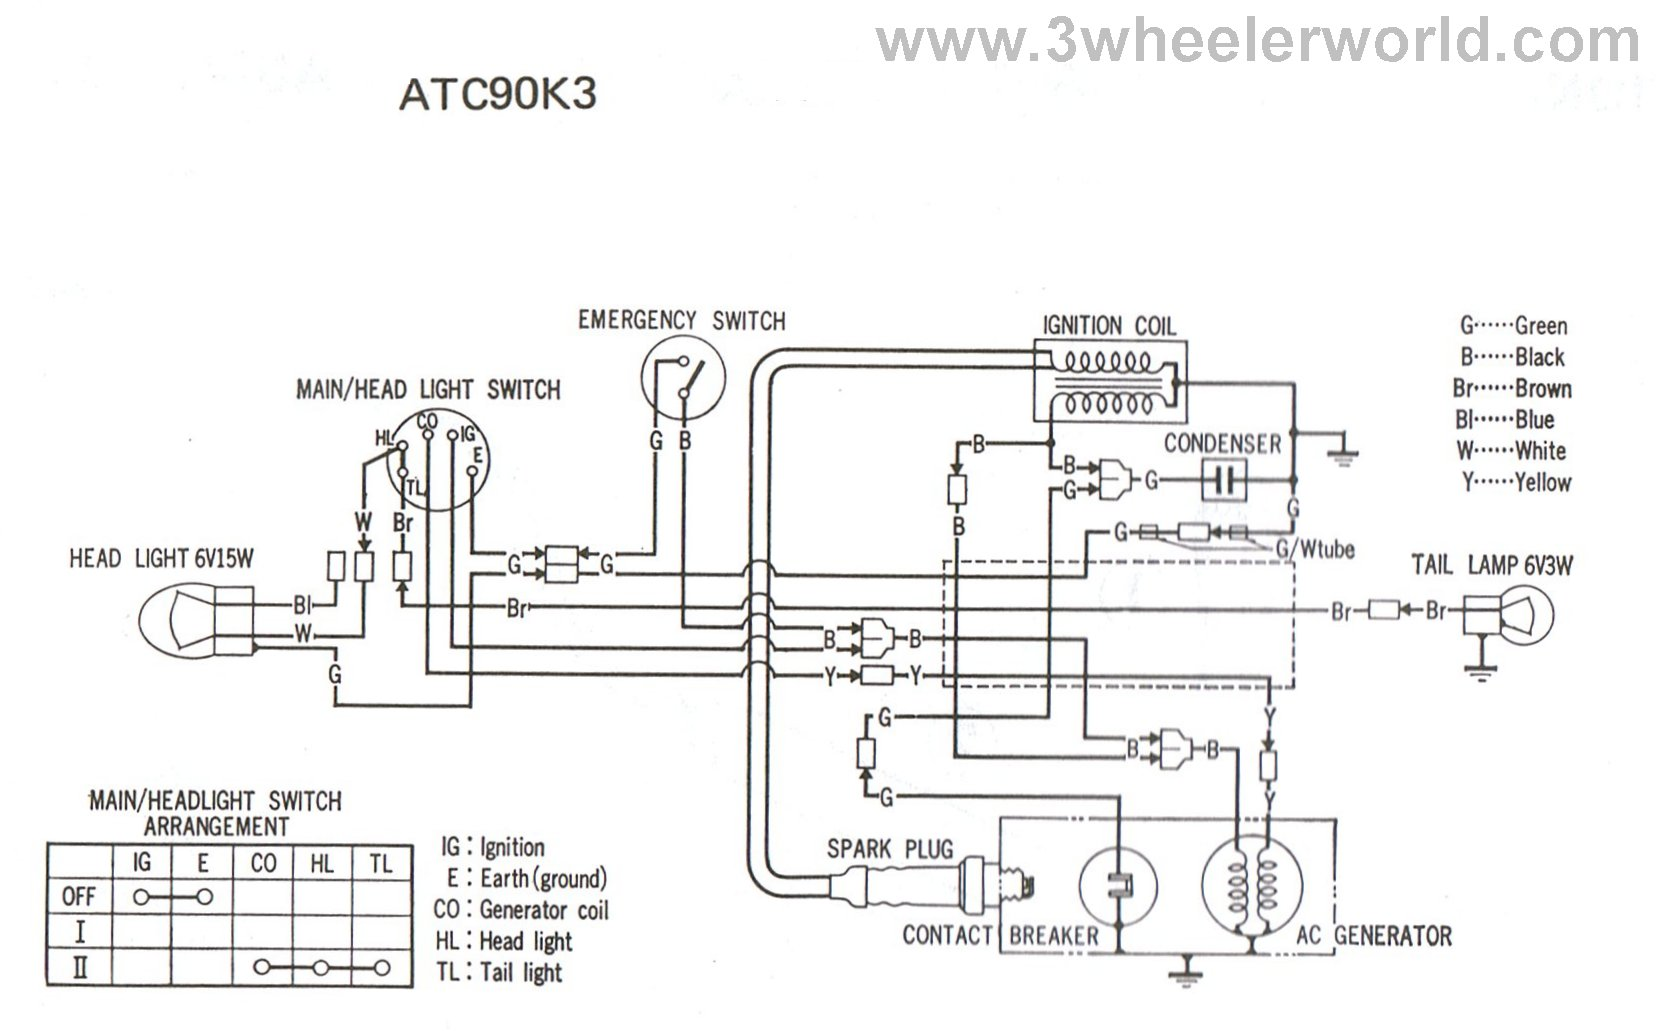 polaris scrambler 90 wiring diagram  polaris  get free image about wiring diagram 2004 polaris sportsman 500 wiring diagram 2004 polaris sportsman 500 wiring diagram pdf